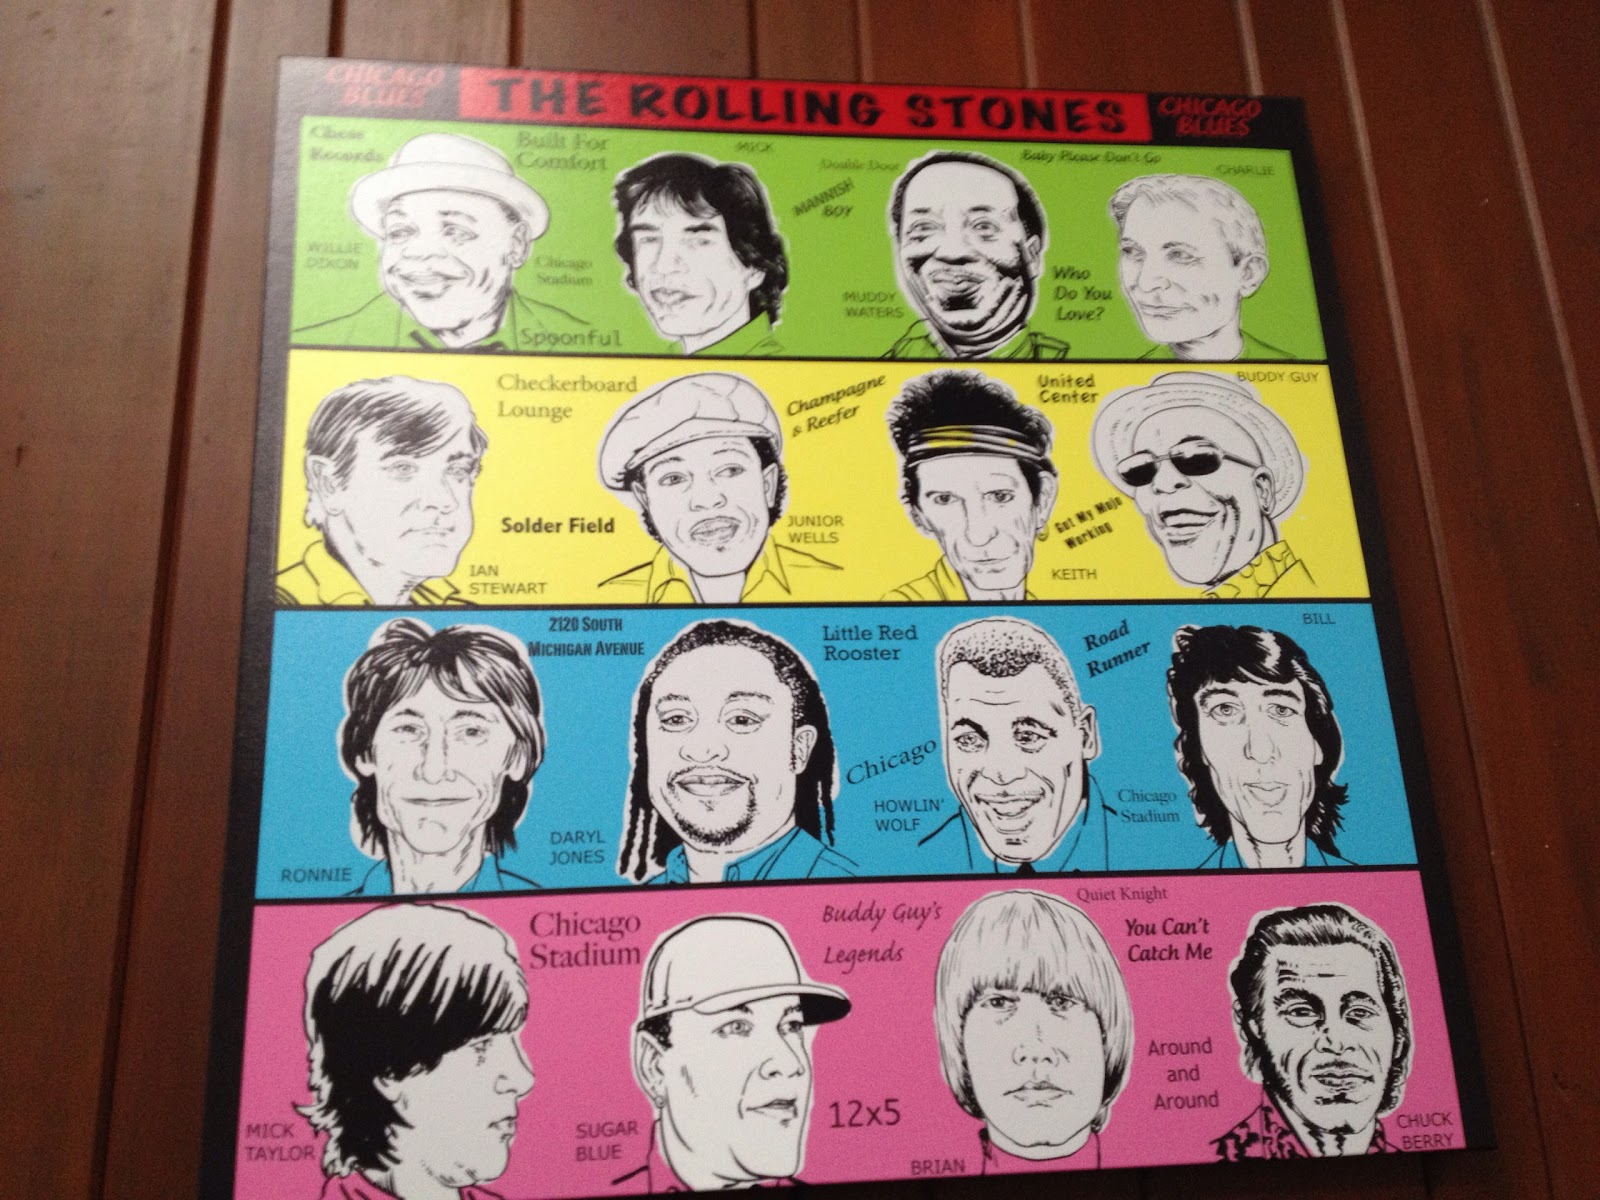 The Rolling Stones Muddy Waters Poster